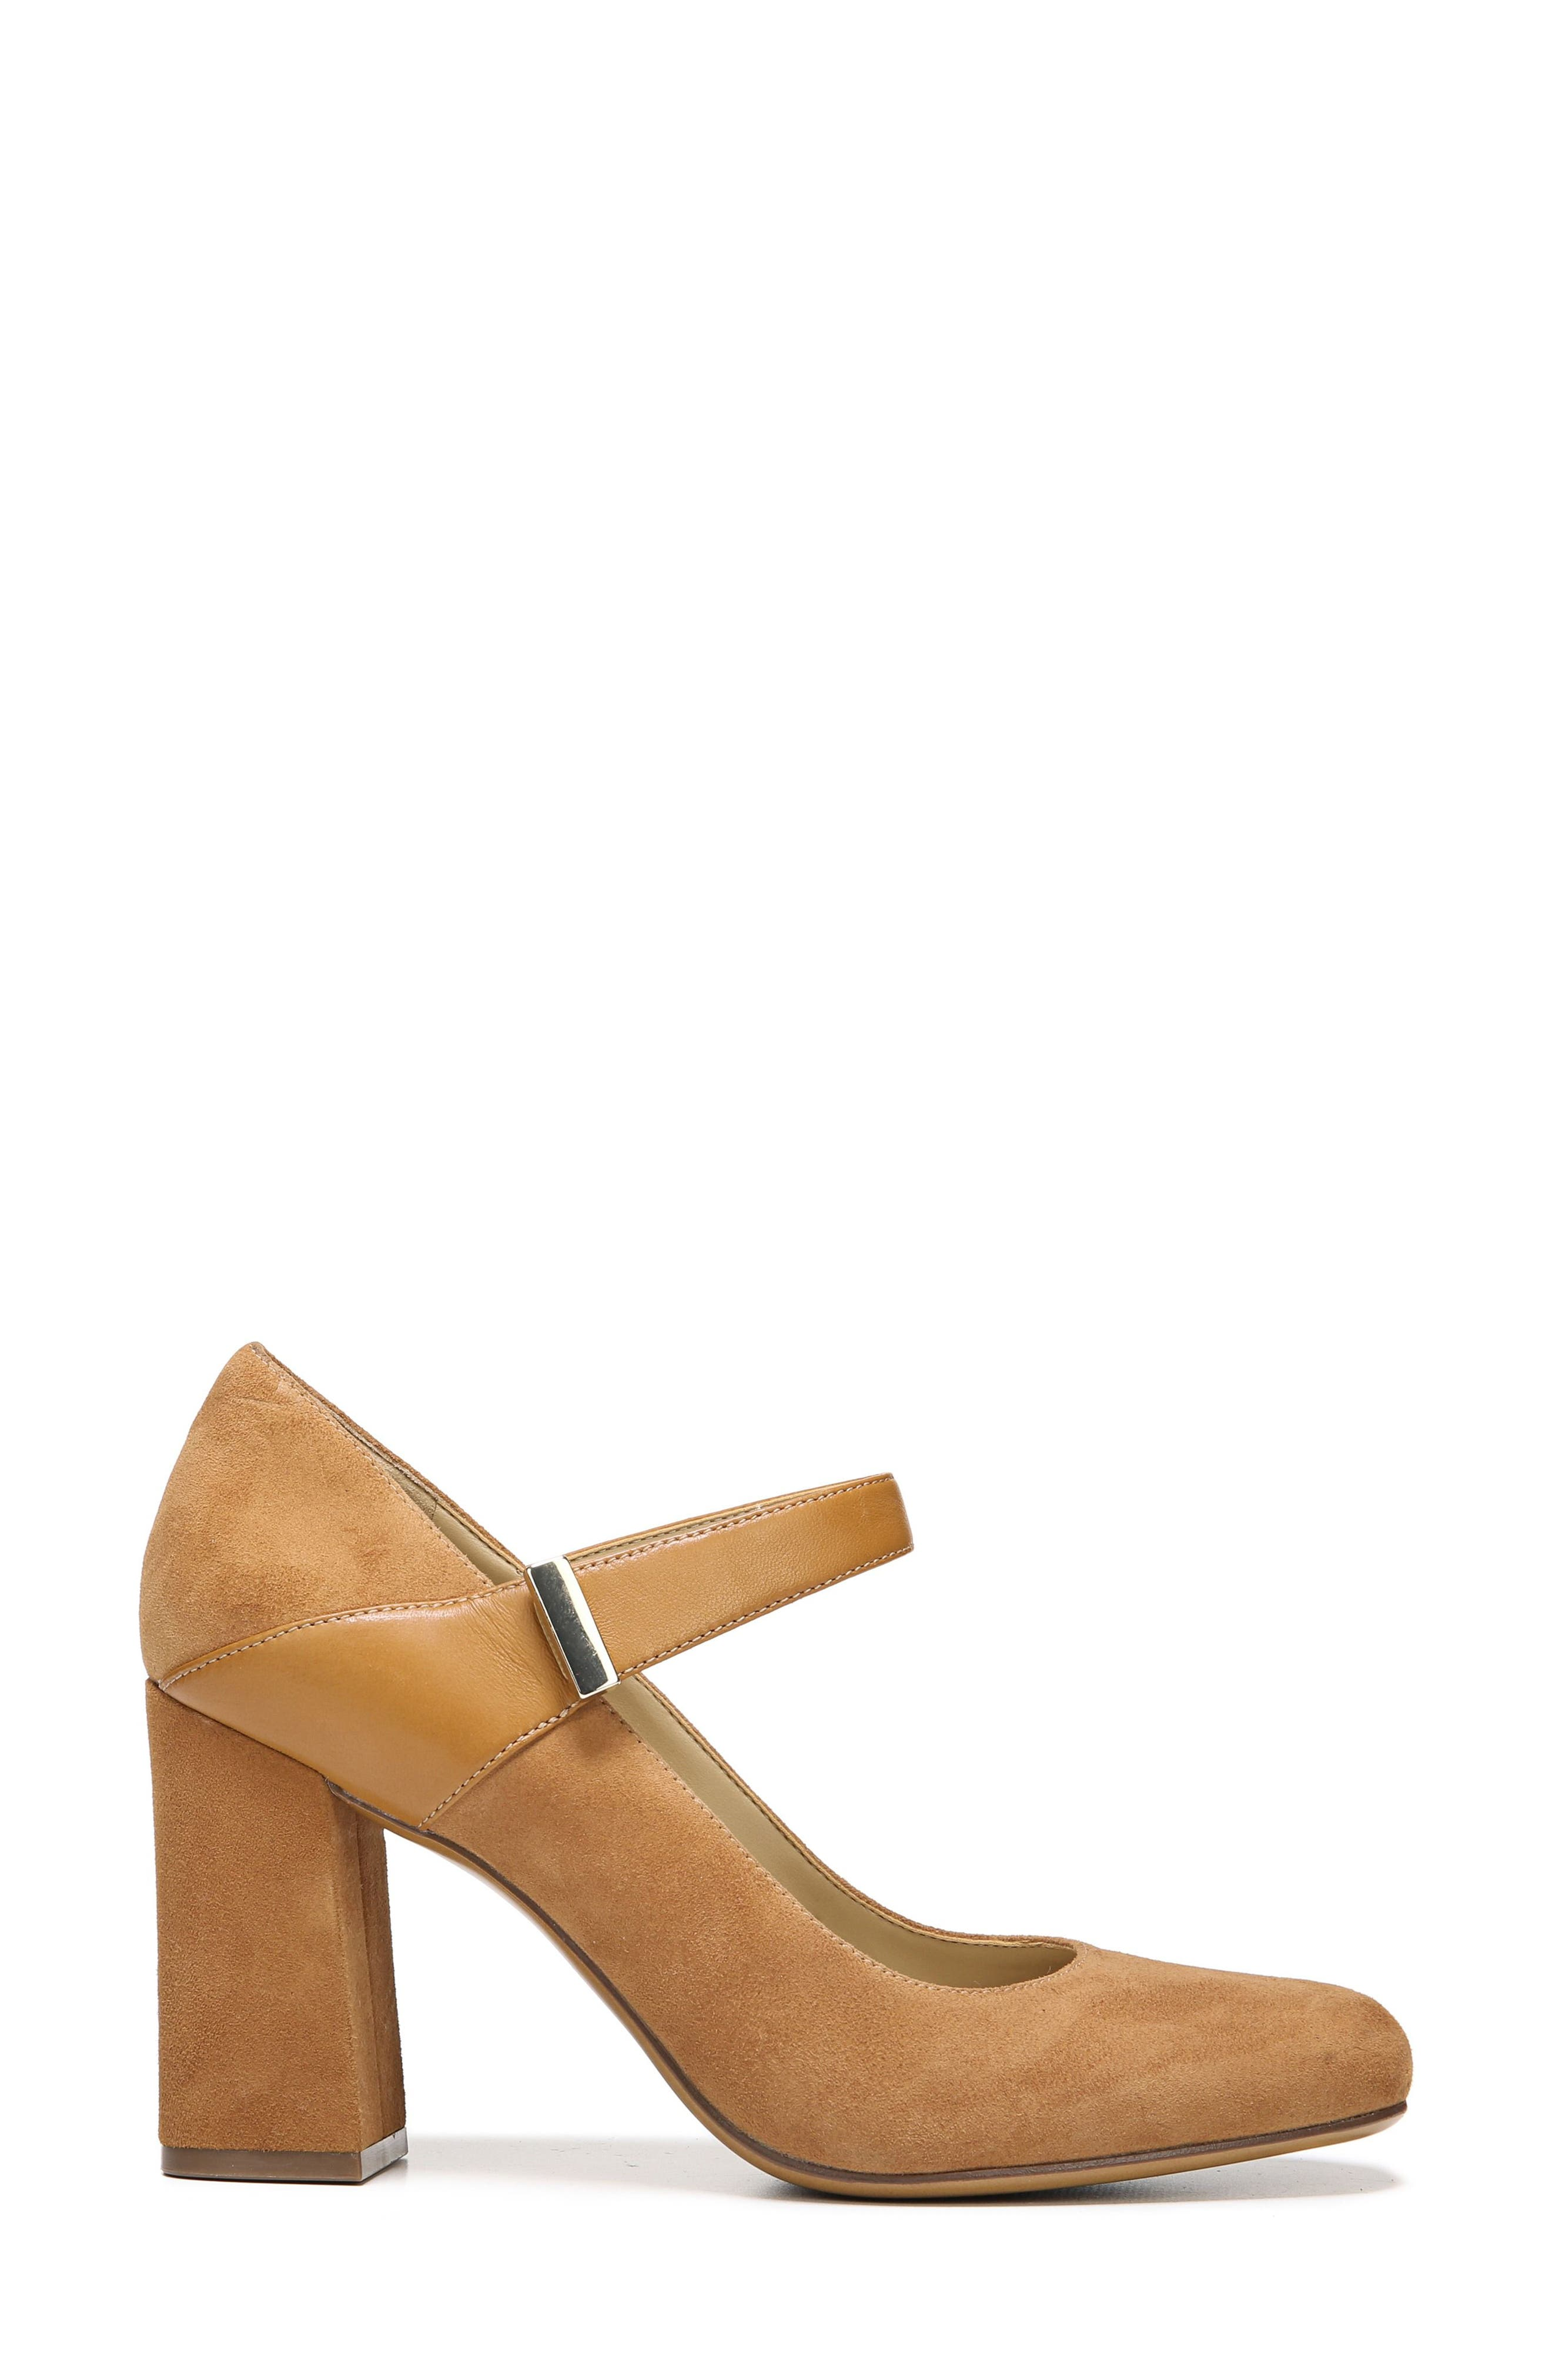 Reva Mary Jane Pump,                             Alternate thumbnail 3, color,                             Camelot Suede